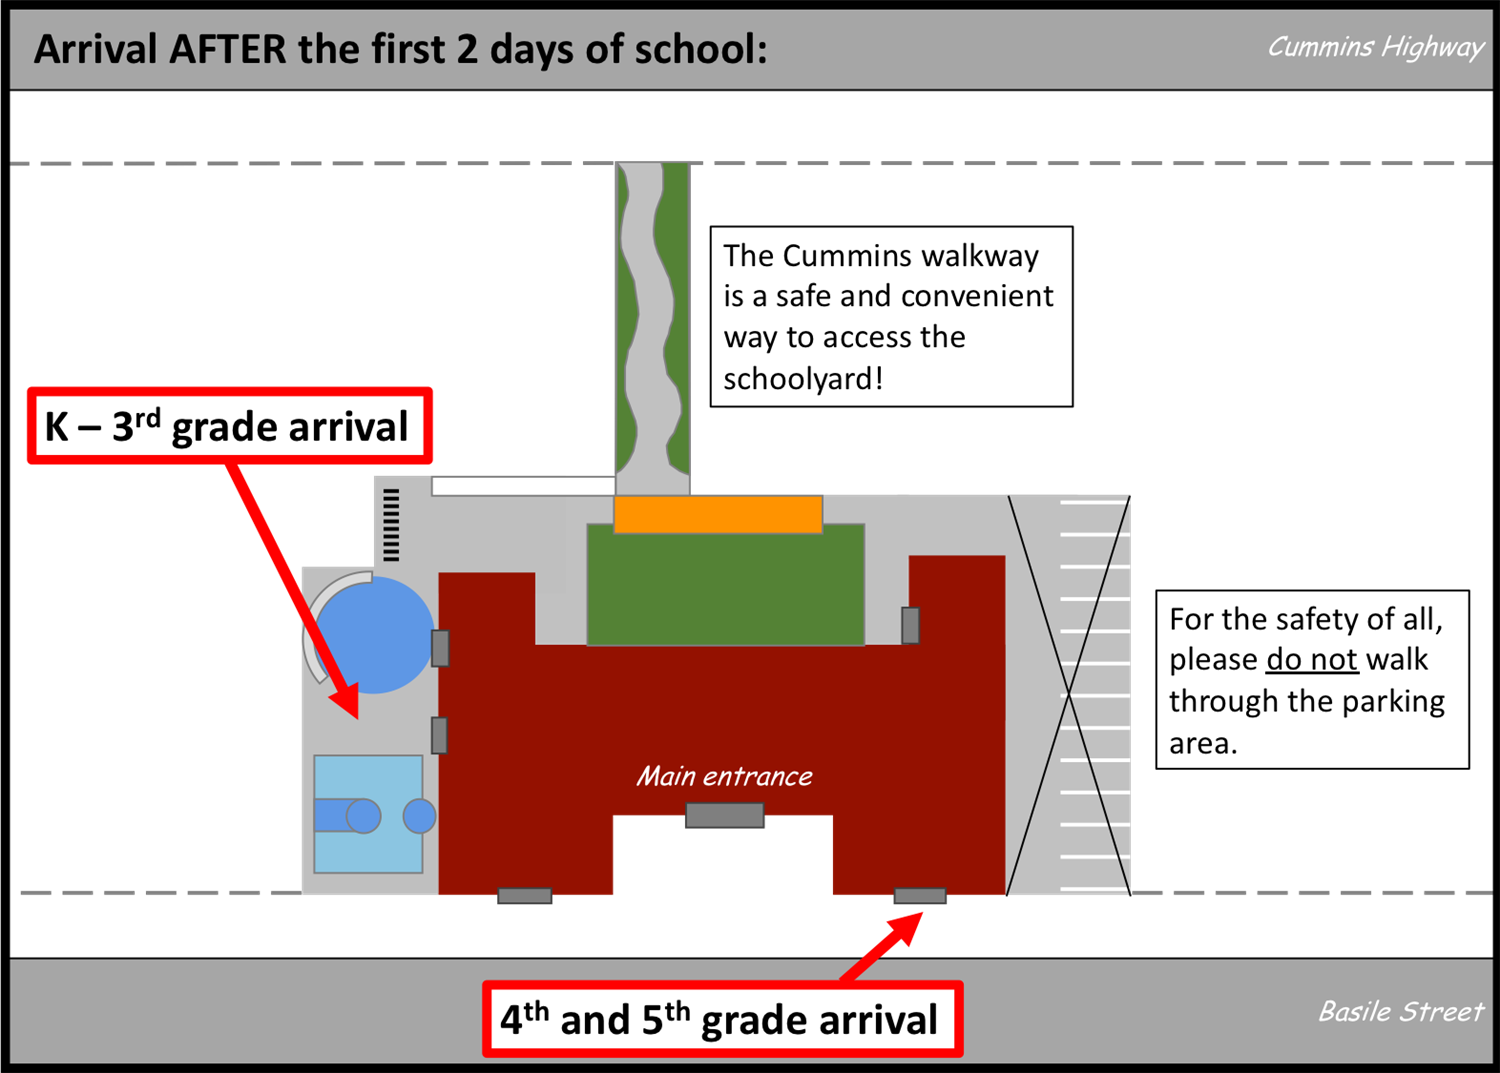 diagram of student arrival and entrance into building